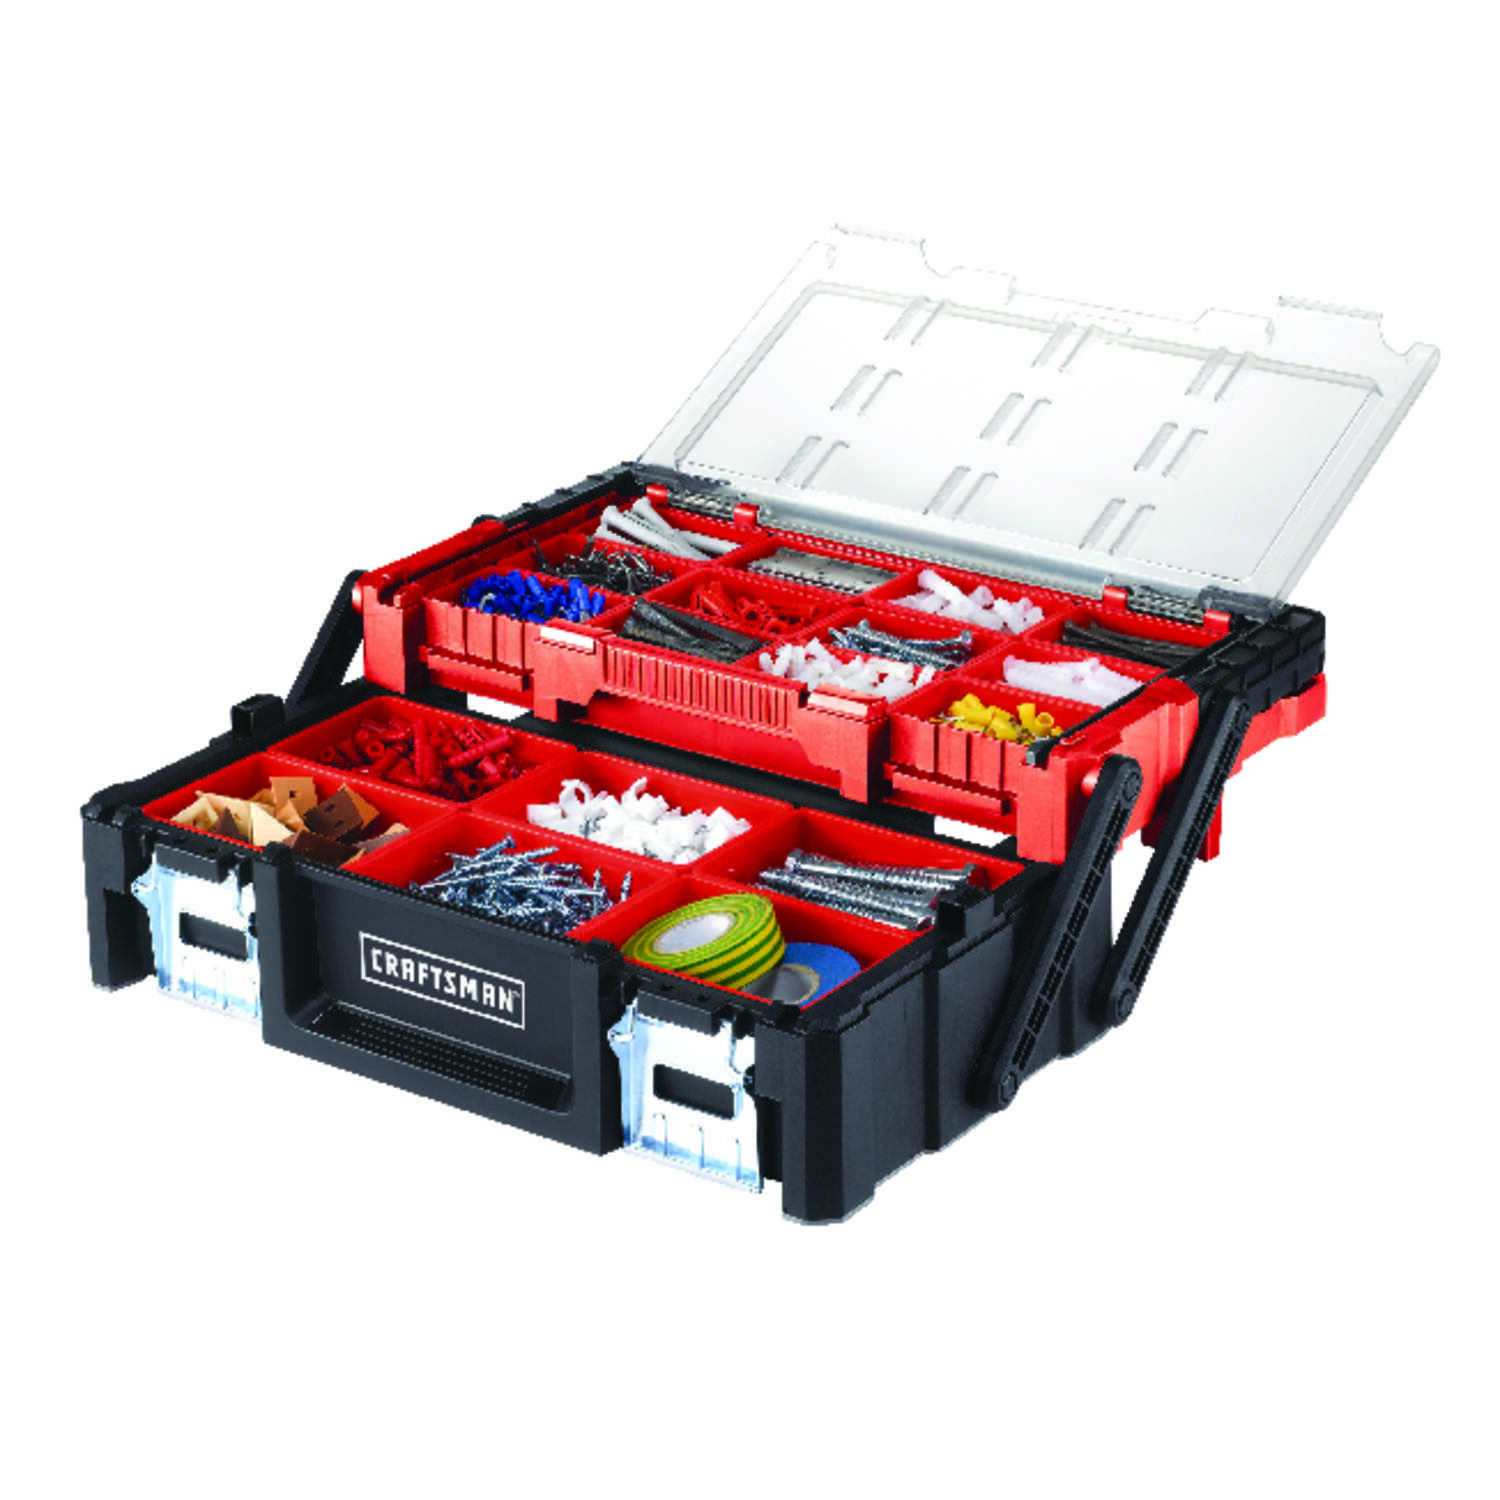 Craftsman  18 in. Plastic  Toolbox  9.4 in. W x 5.71 in. H Black